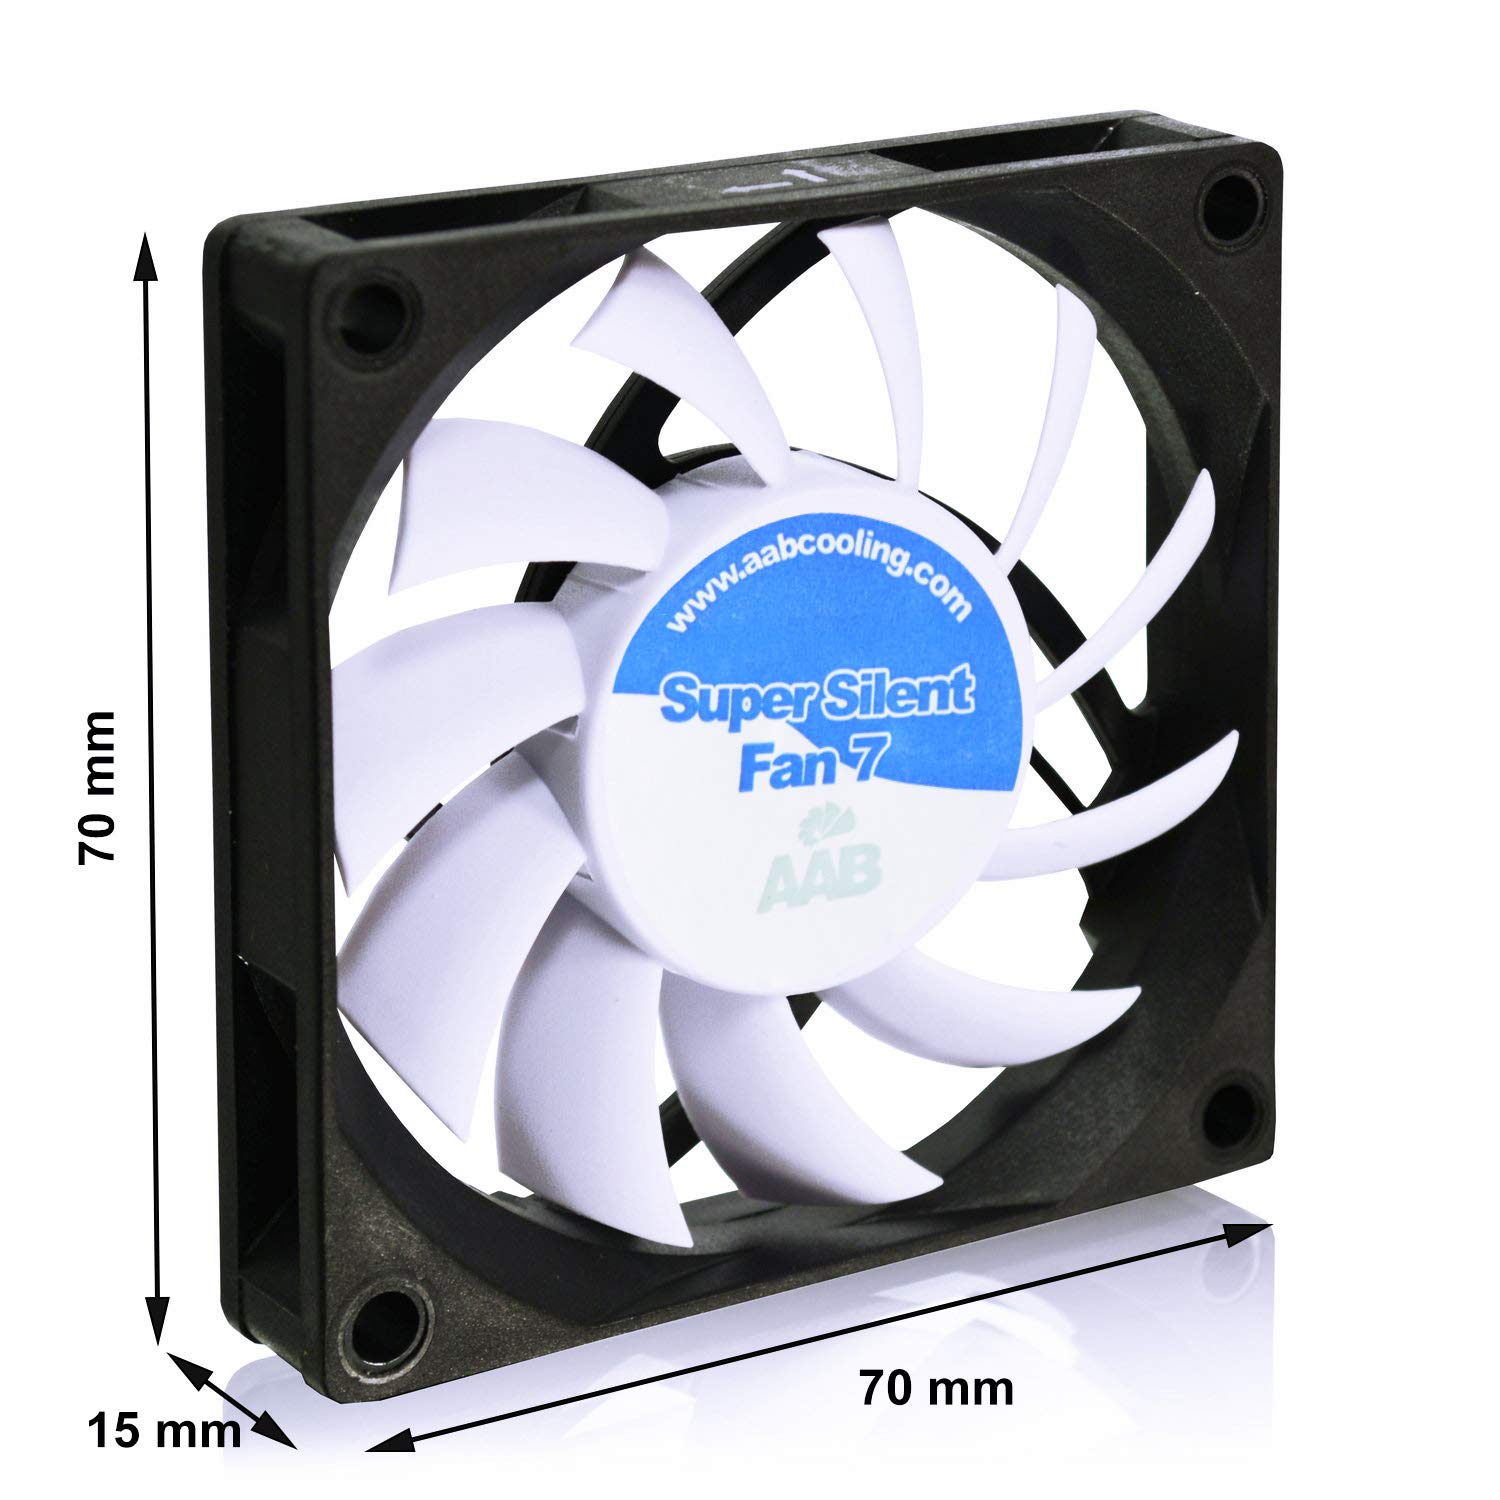 9c2877967531 AAB Cooling Super Silent Fan 7 - Silent and Efficient 70mm Fan with 4  Anti-vibration Pads | 12V Fan | Air Cooler | Computer Fan | Silent PC Fan:  ...